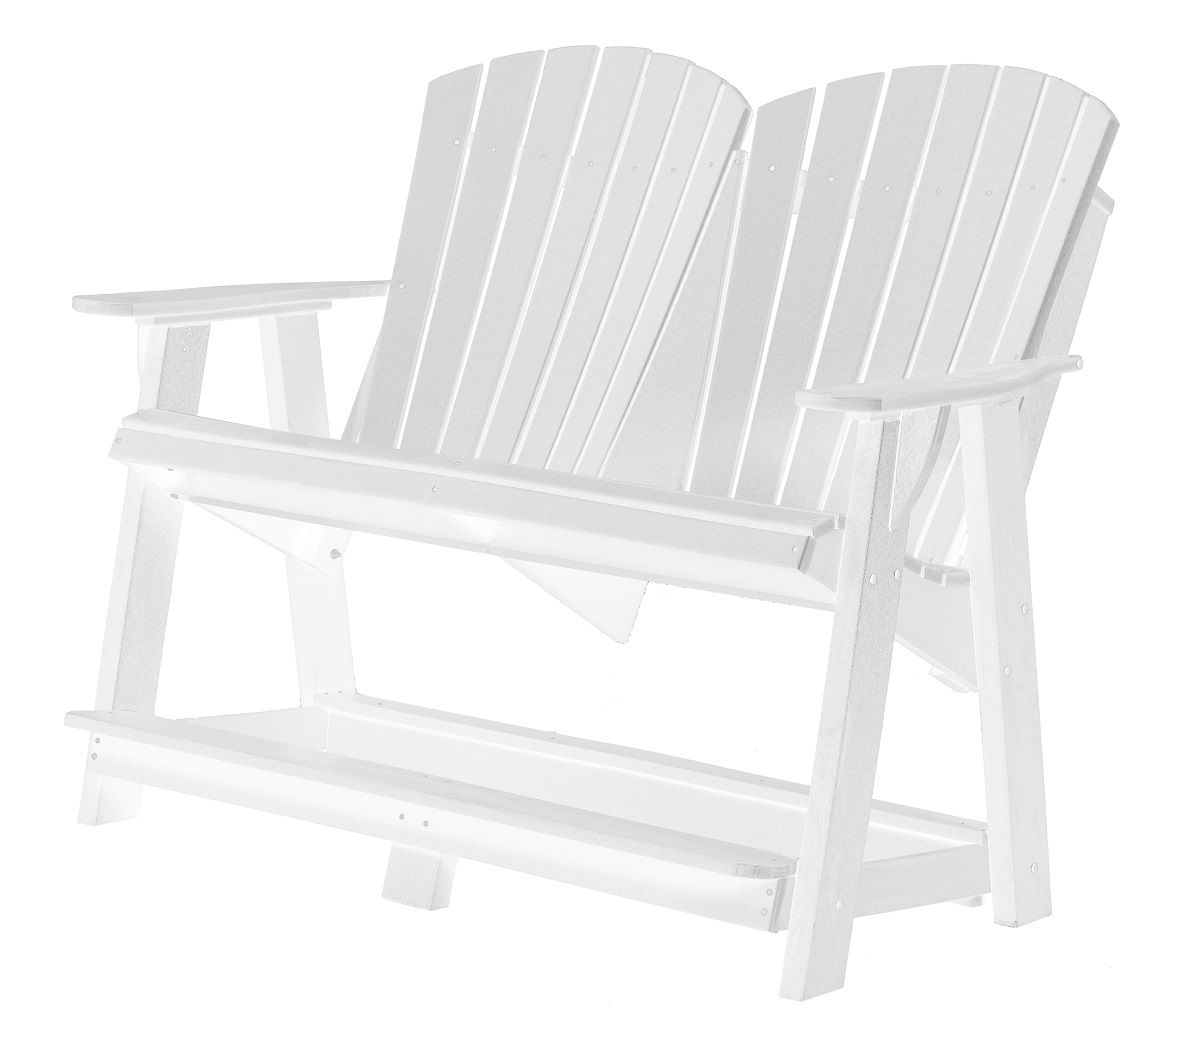 White Sidra Double High Adirondack